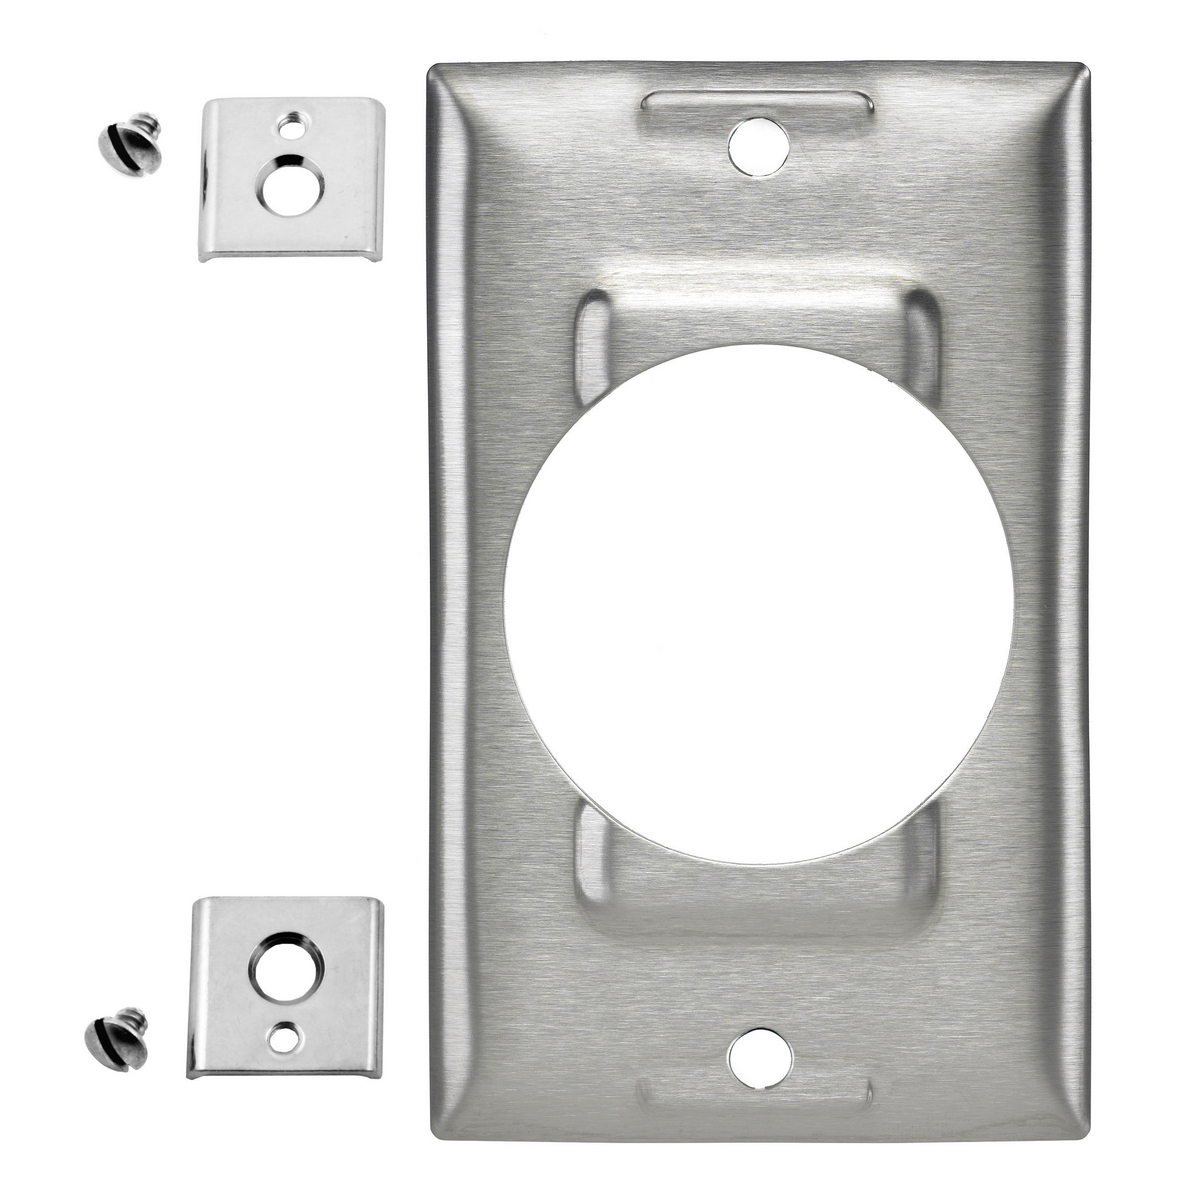 Hubbell SS750 1-Gang Stainless Steel 50 Amp Receptacle Locking Wallplate